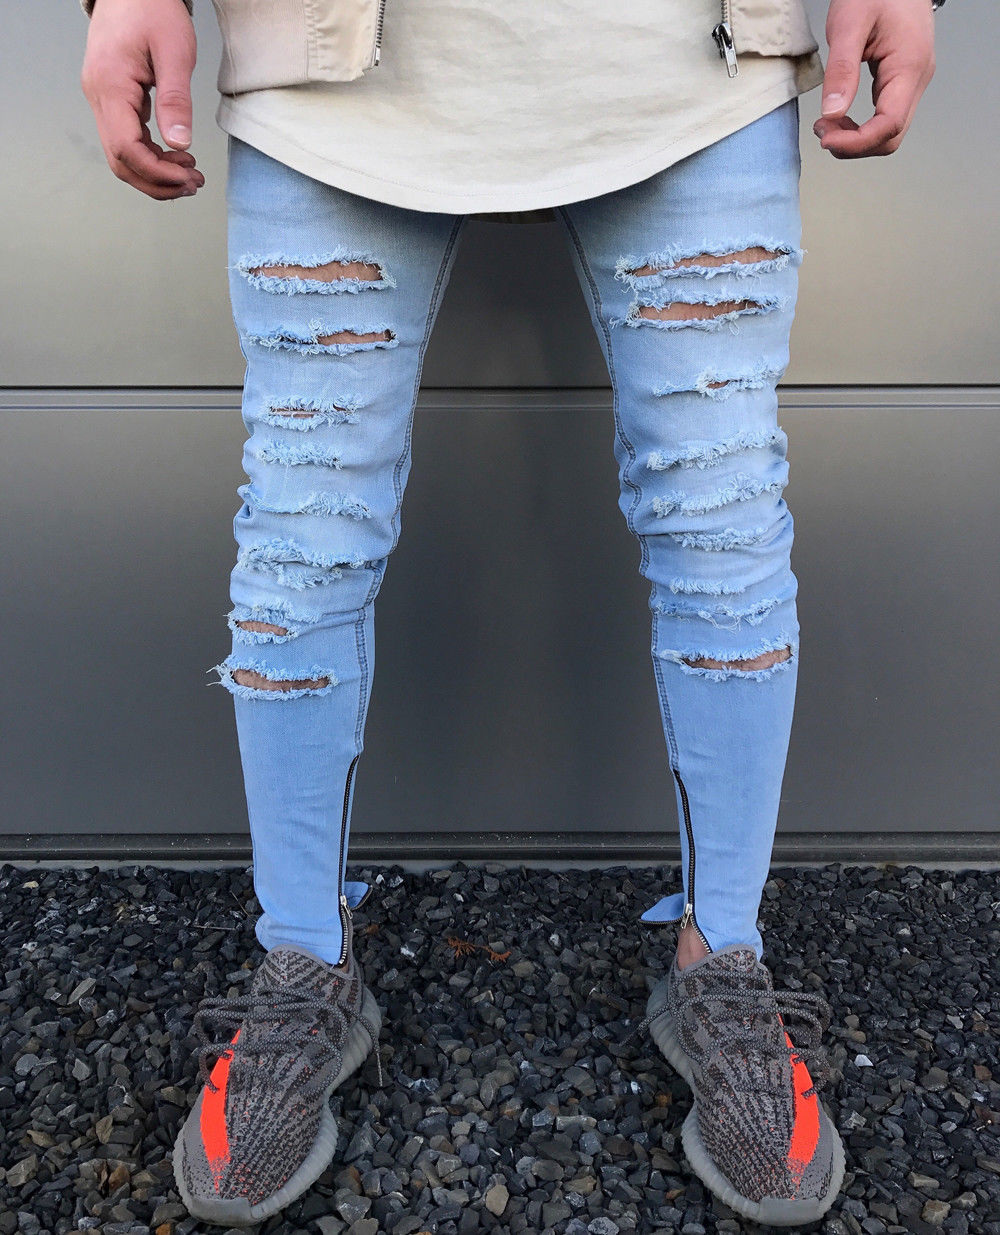 Fashion Men Ripped Skinny Hole Jeans Destroyed Frayed Slim Fit Denim Pants Stylish Mens Fake Zipper Pencil Denim Jeans plc xm150 plc xm150l plc wm5500 plc zm5000l poa lmp136 for sanyo compatible projector lamp bulbs with housing